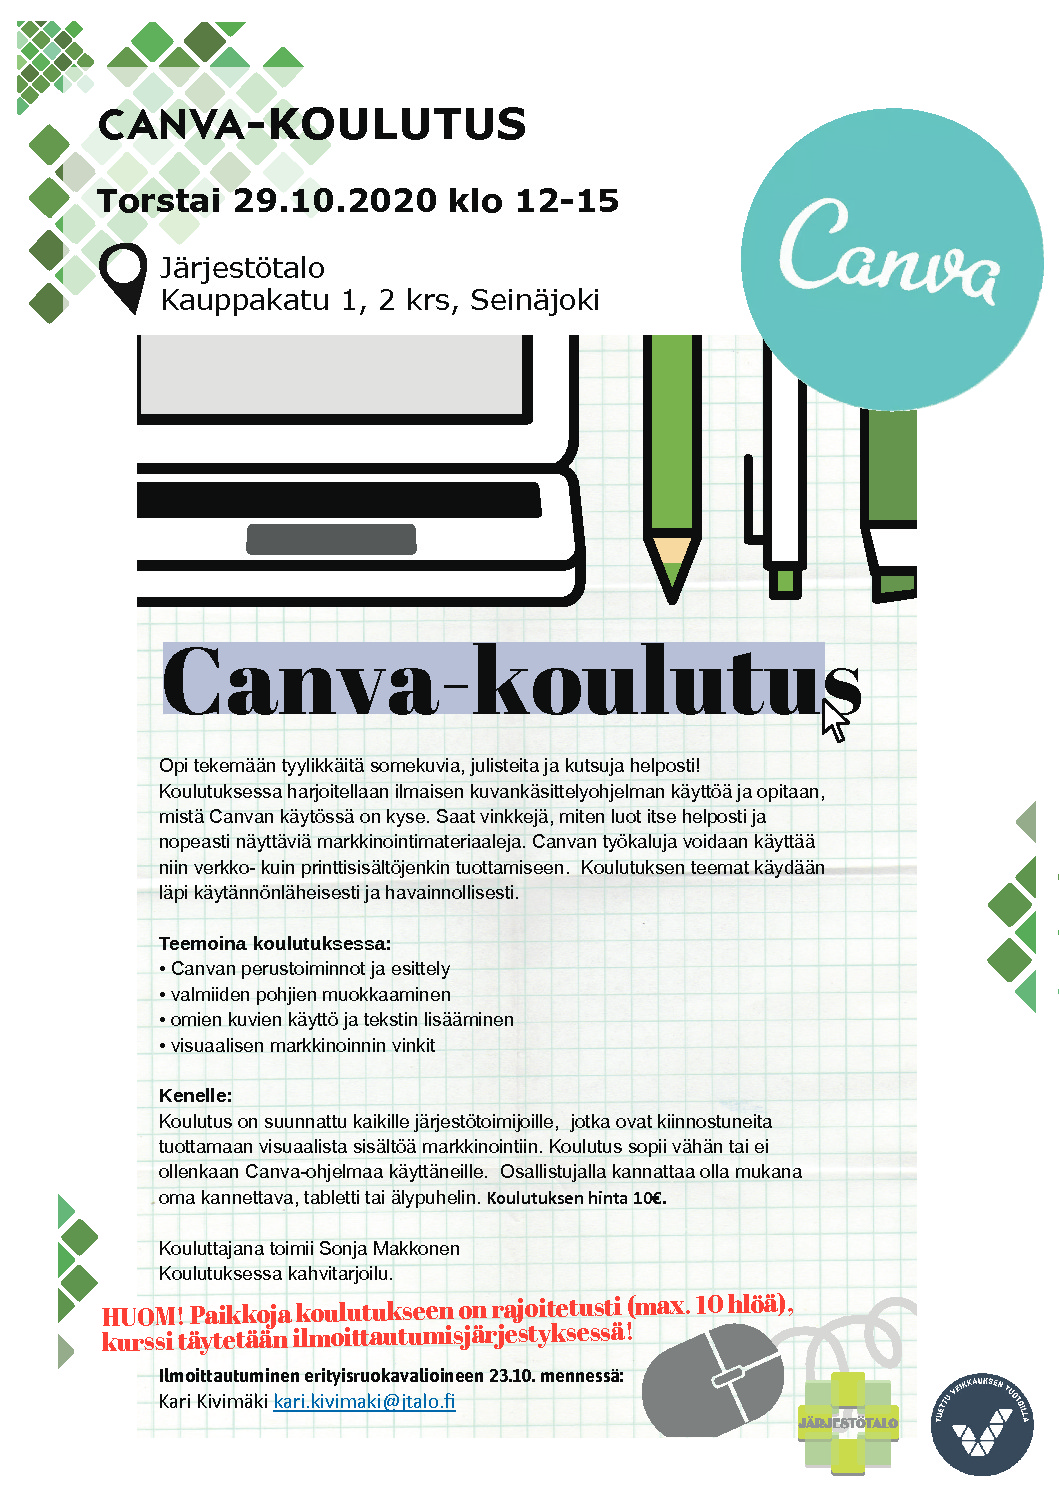 thumbnail of canva_koulutus2020